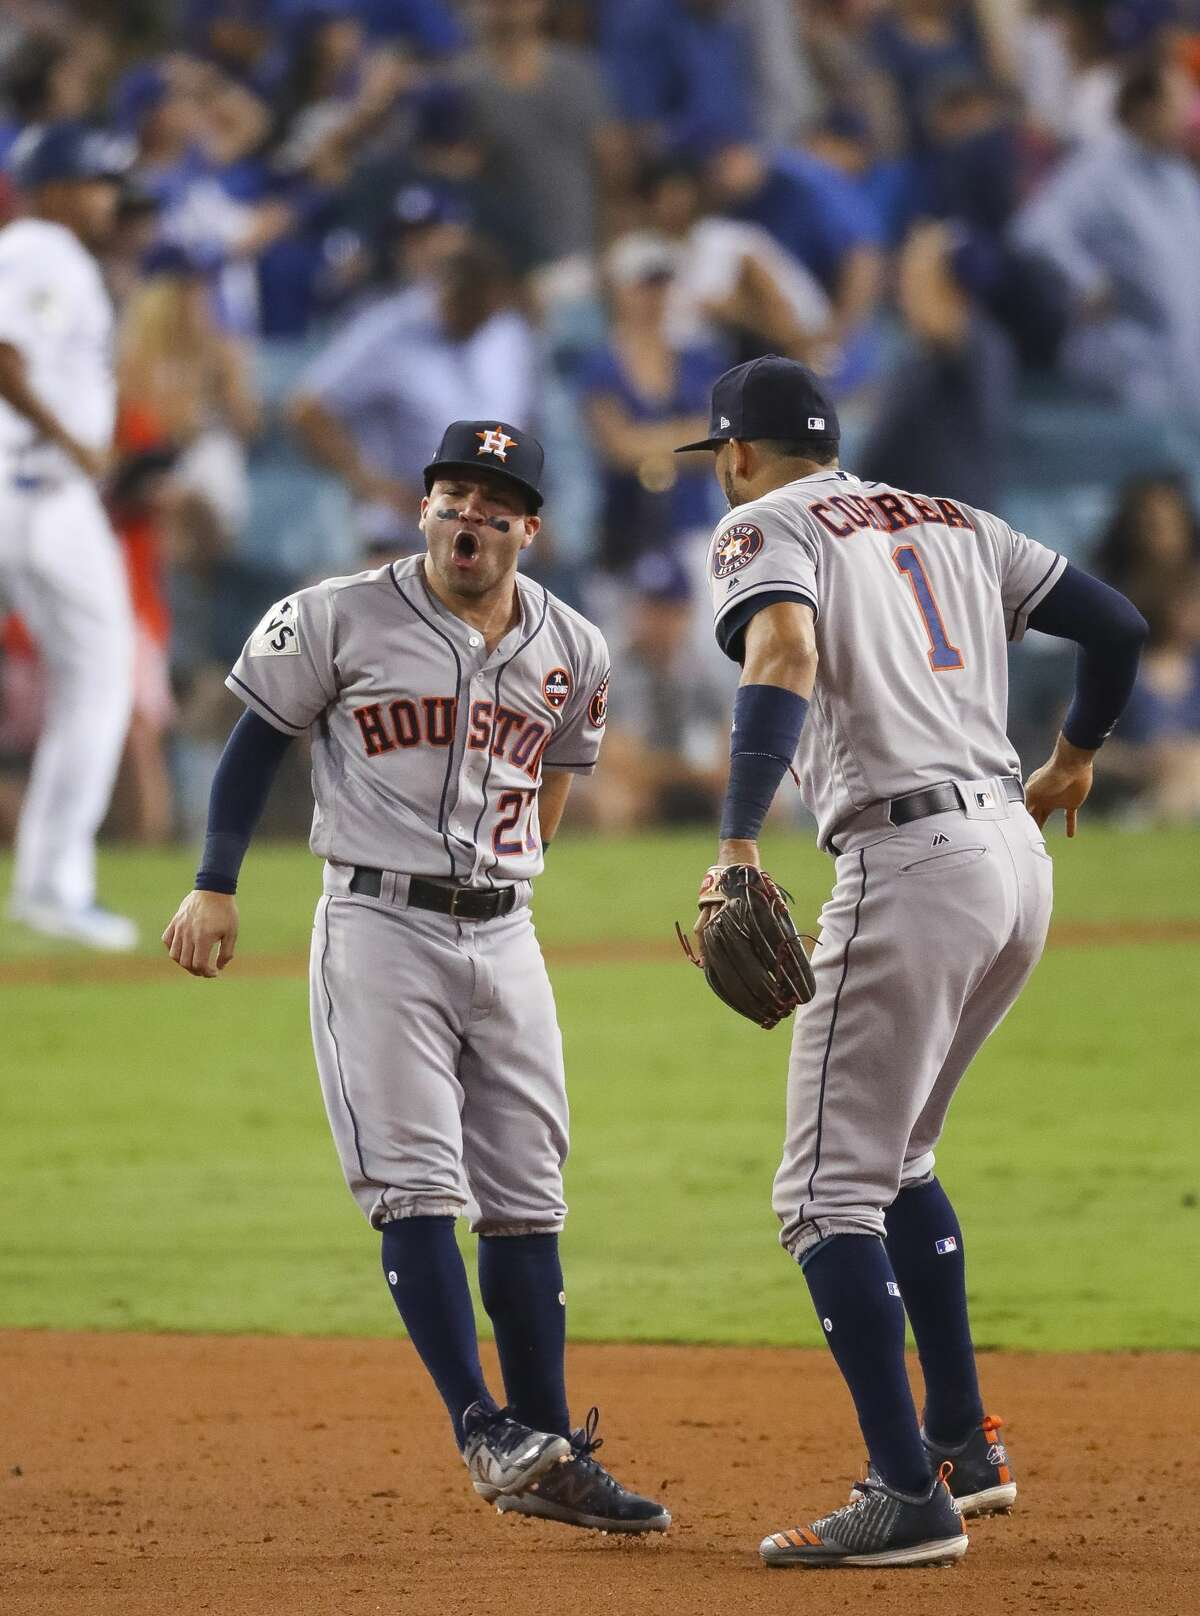 Houston Astros second baseman Jose Altuve (27) and Houston Astros shortstop Carlos Correa (1) react at the conclusion of the Astros 7-6 win in Game 2 of the World Series at Dodger Stadium on Wednesday, Oct. 25, 2017, in Los Angeles.